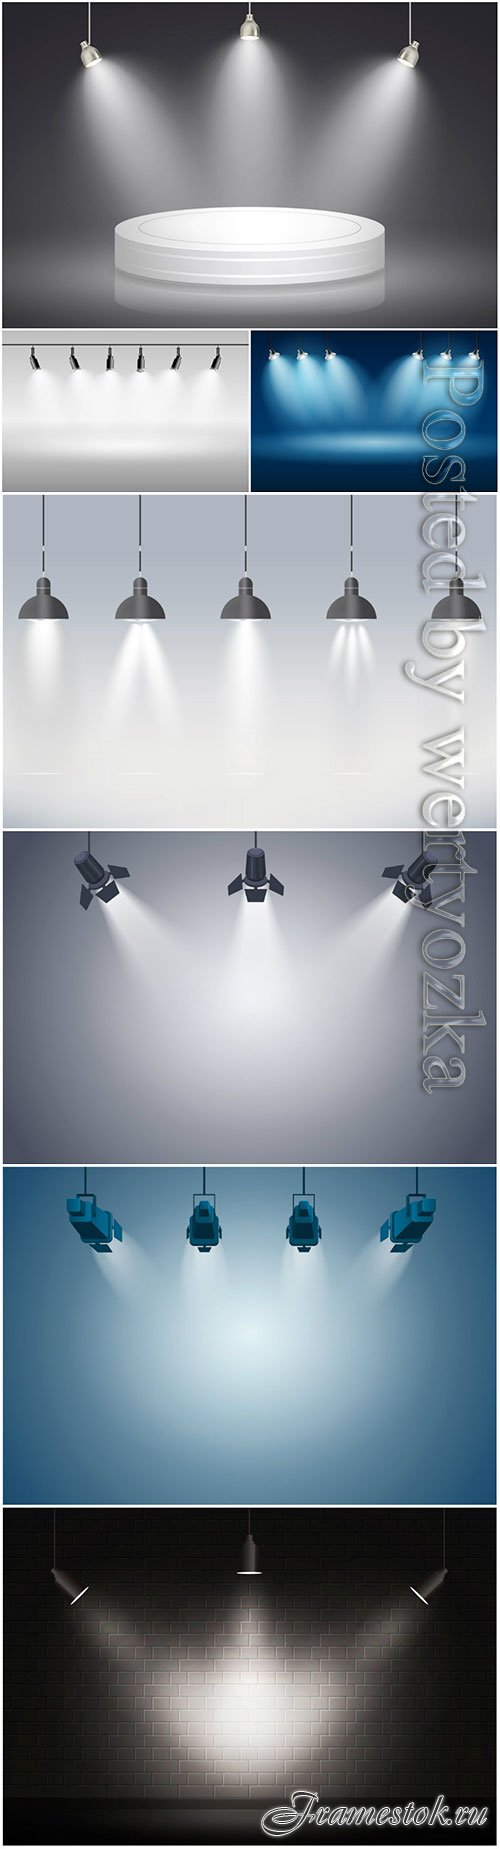 Spotlights vector background